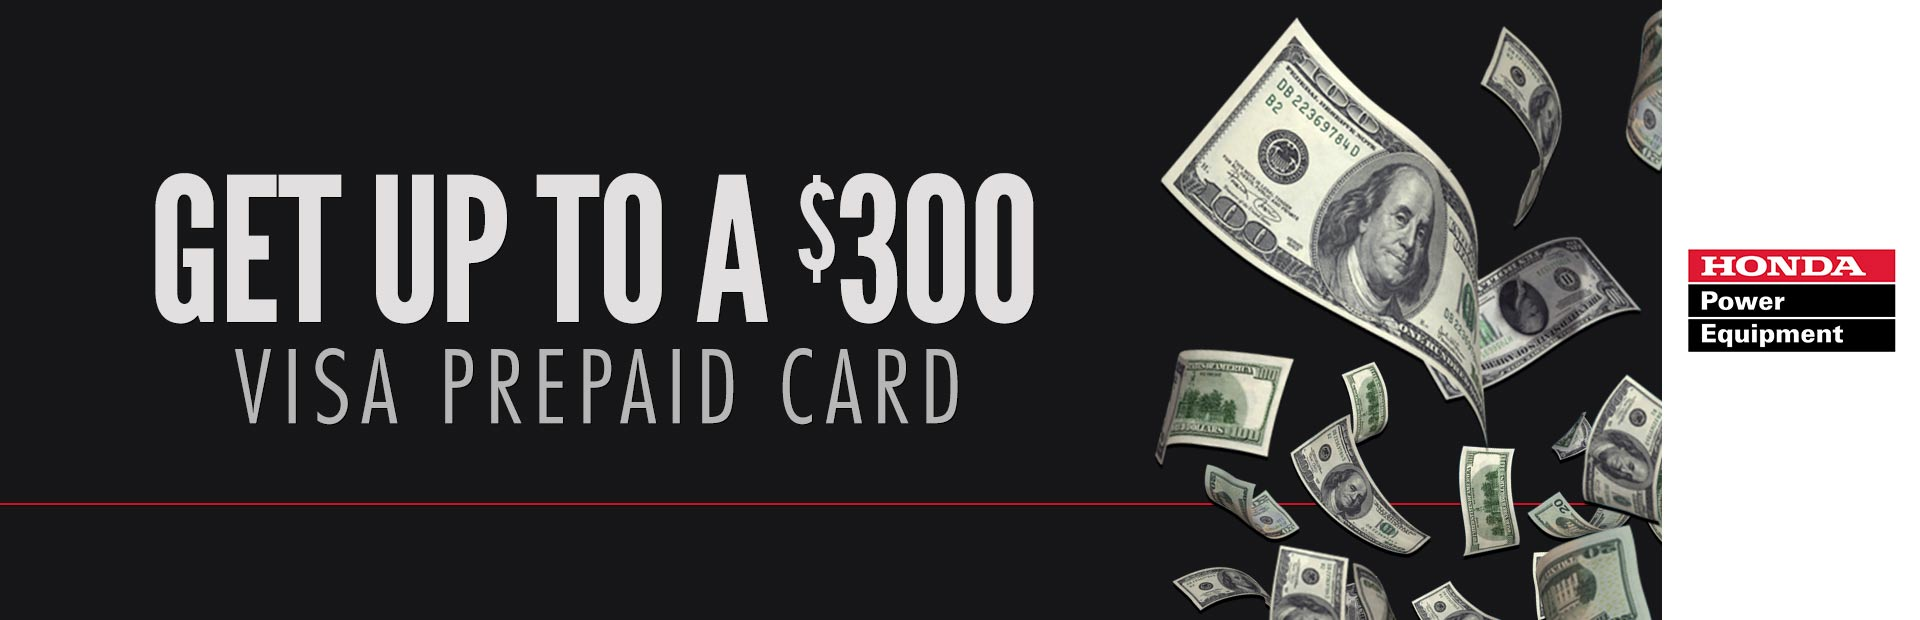 Get Up To A $300 Visa Prepaid Card